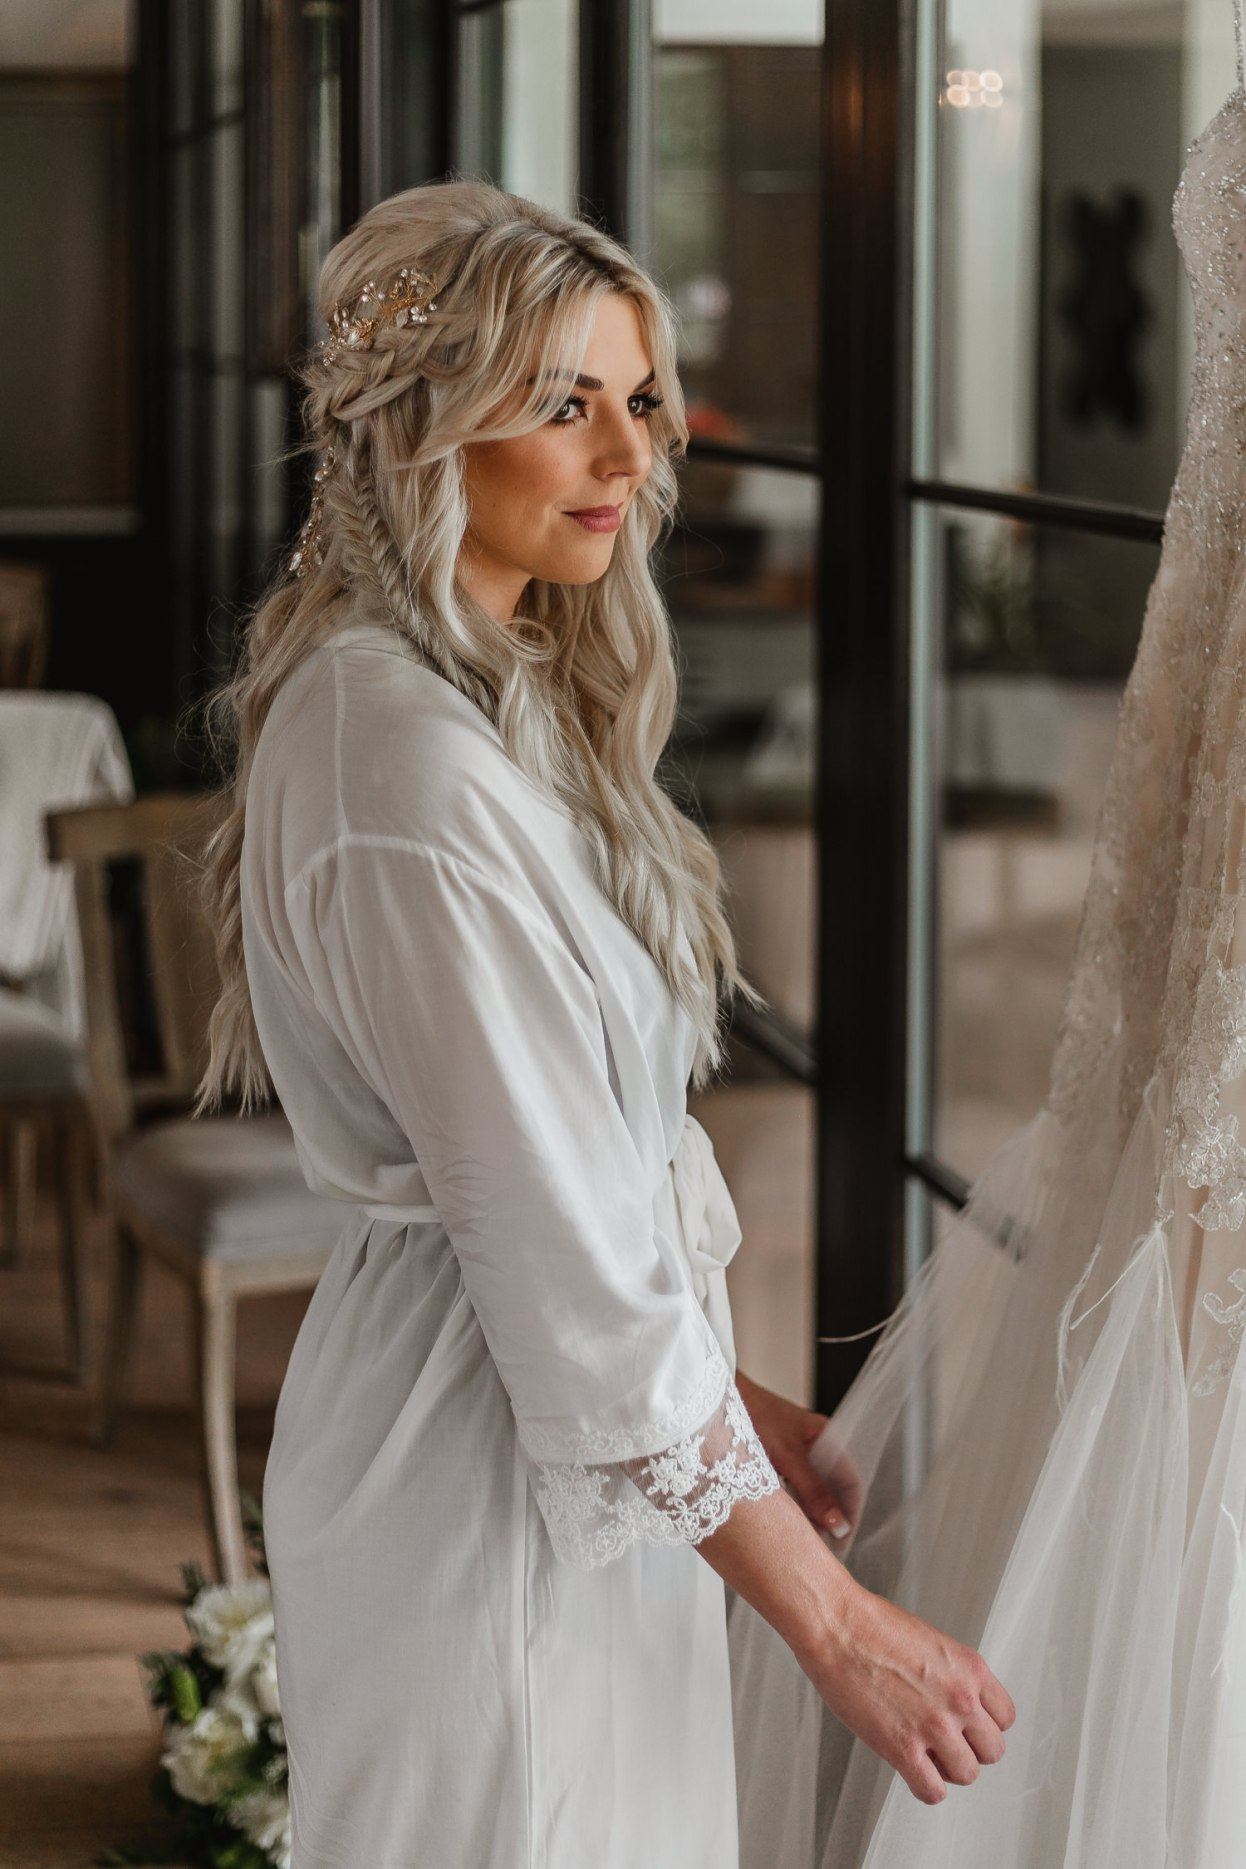 Gorgeous bridal gown details with beautiful bride.